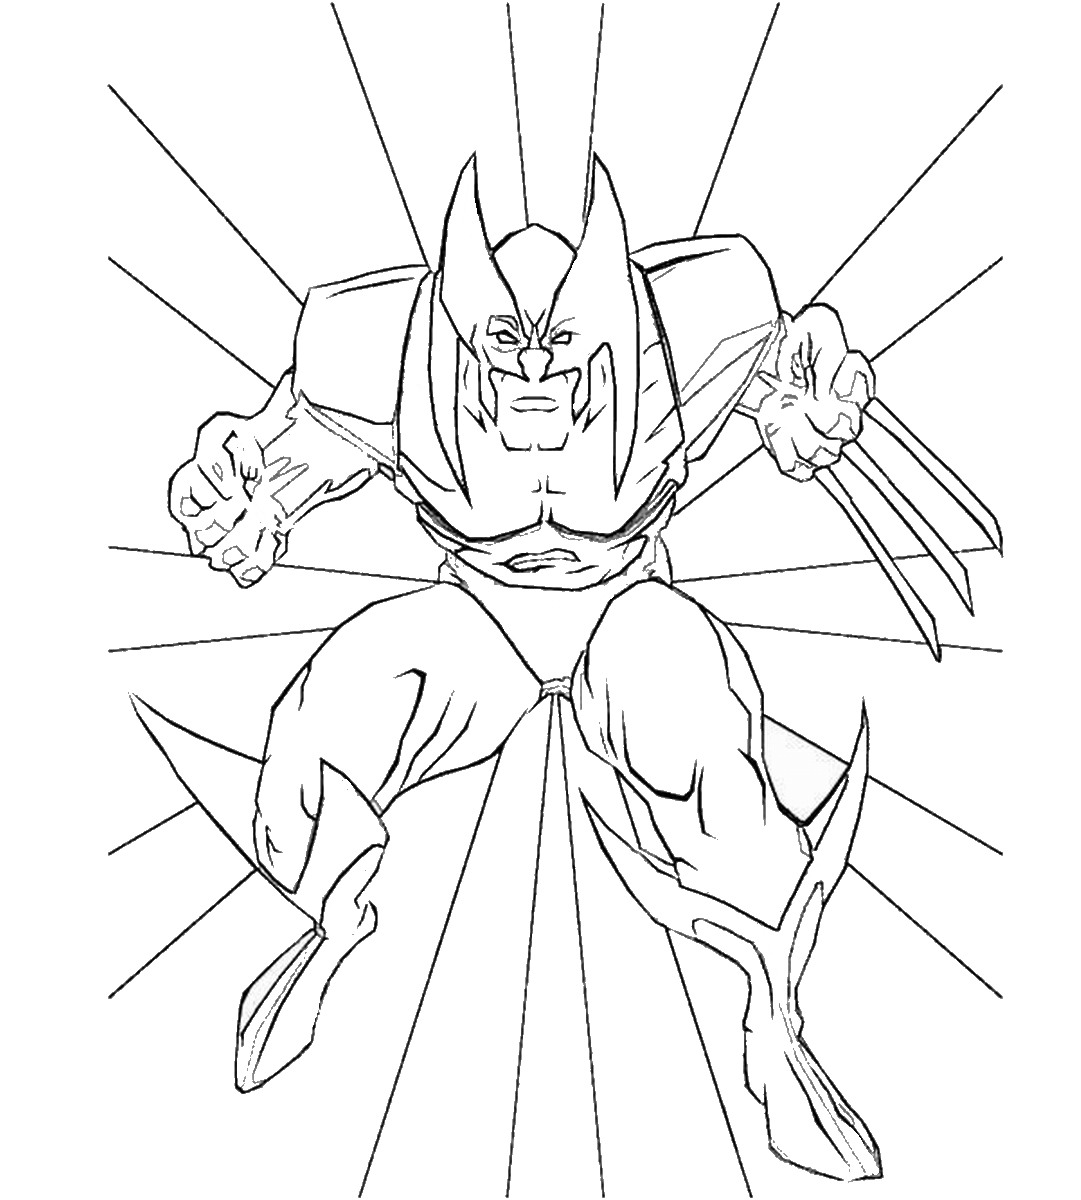 Wolverine and the X-Men Coloring Pages